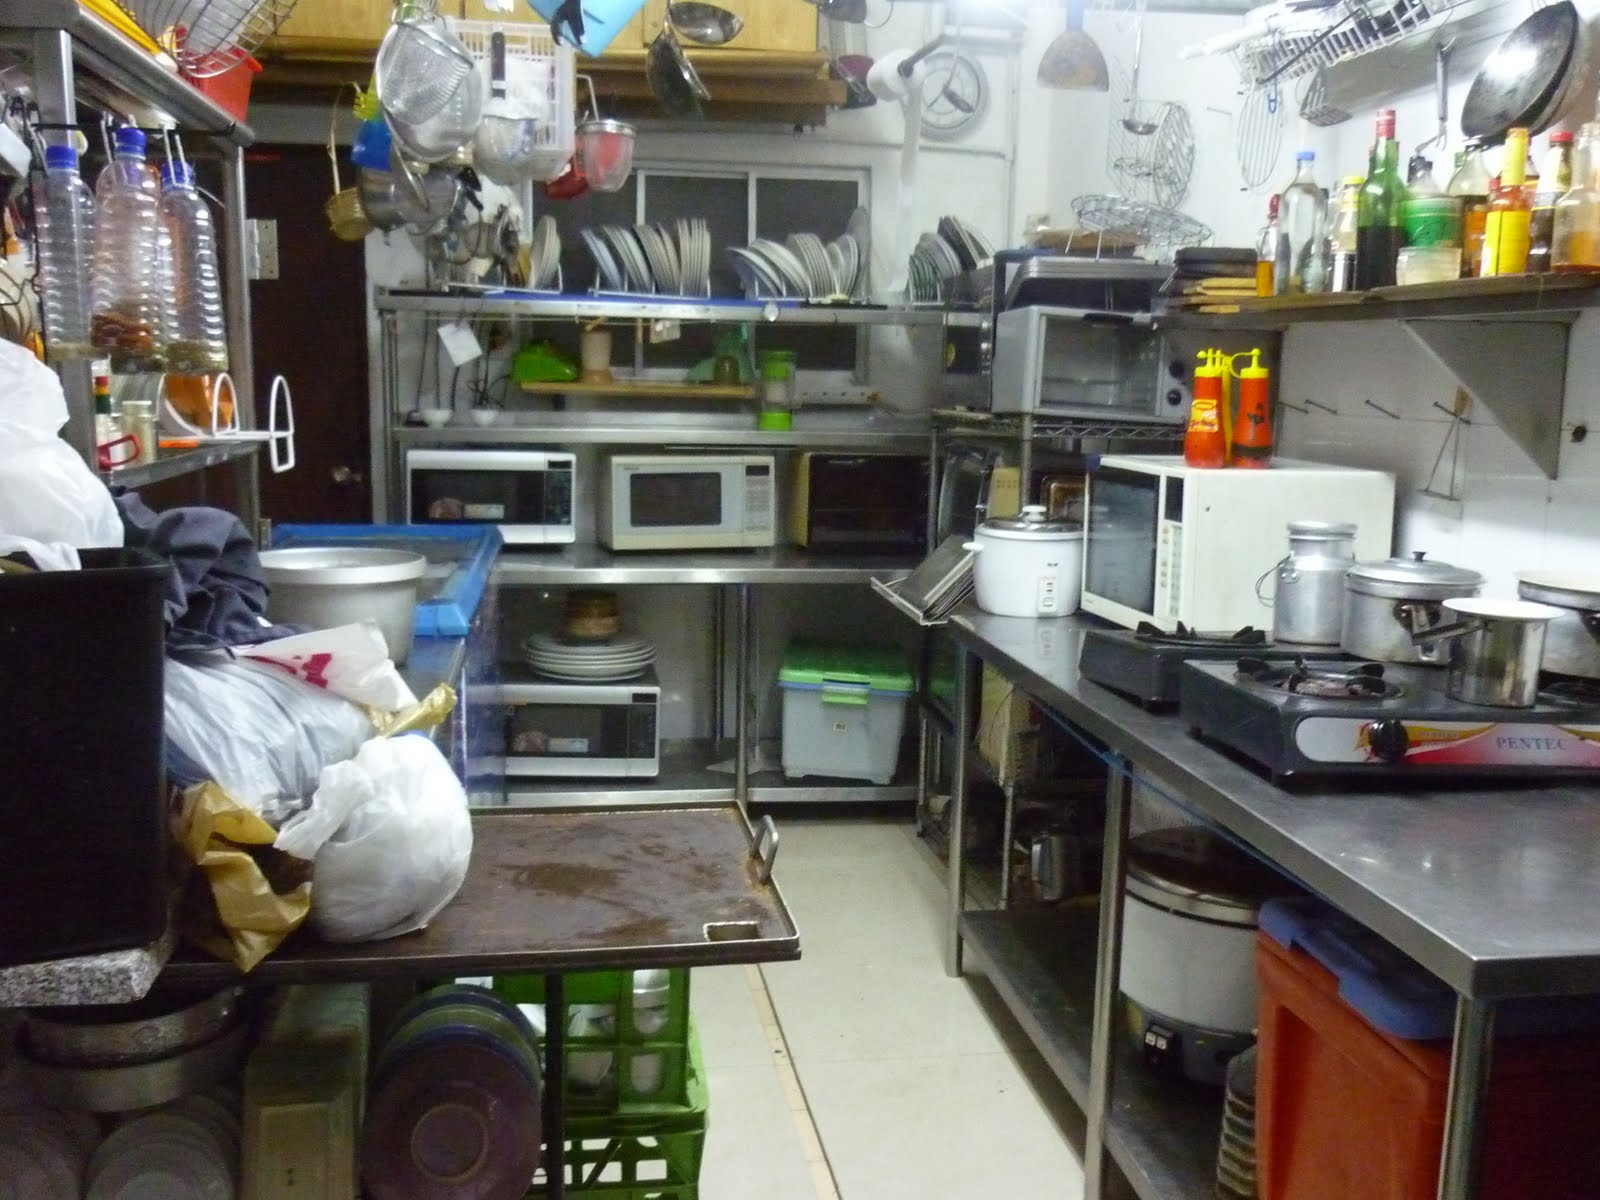 Restaurant Kitchen Setup restaurant: kitchen setup